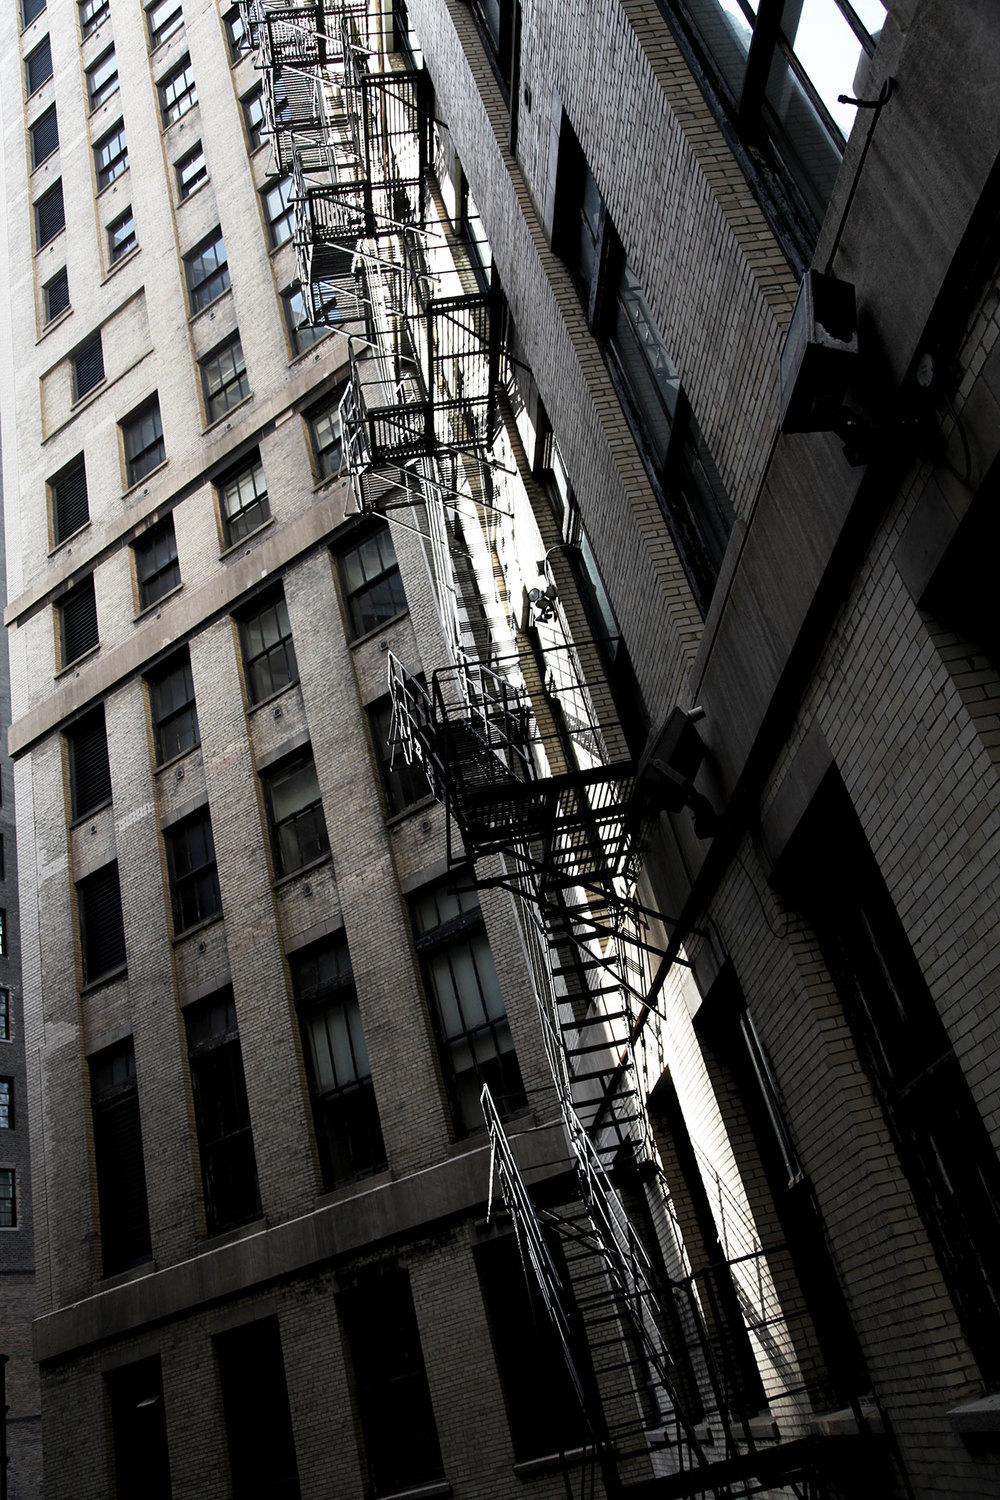 Rudy-Poe-Chicago_fire_escape-1920-web.jpg